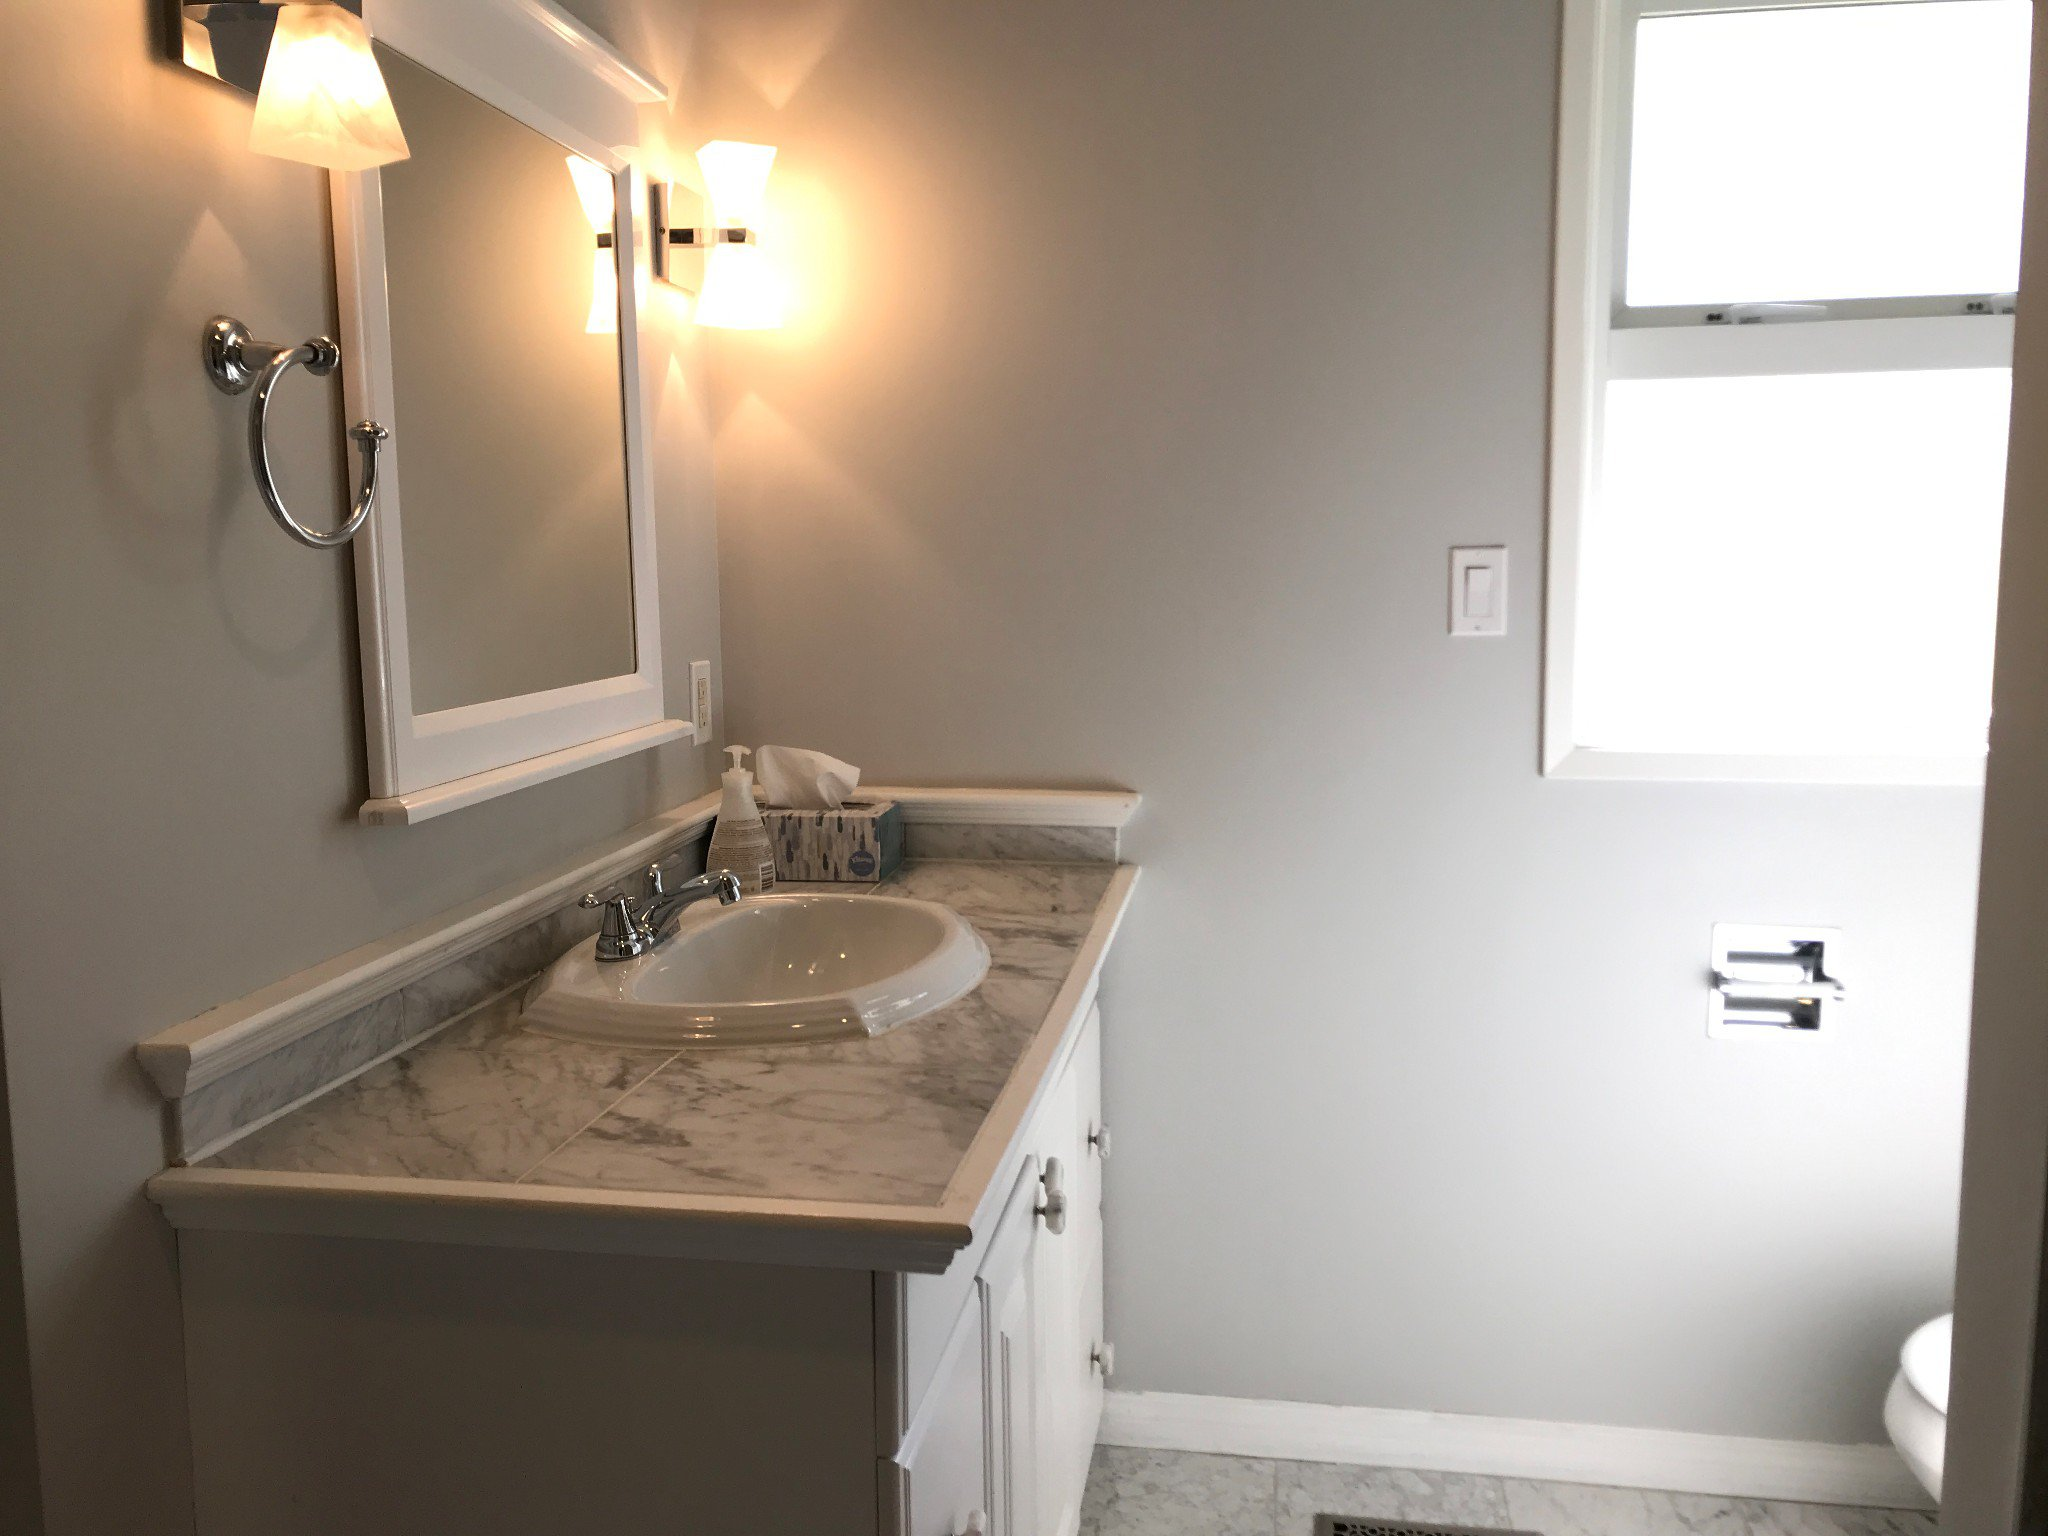 Photo 10: Photos: 34694 Dewdney Trunk Rd. in Mission: House for rent